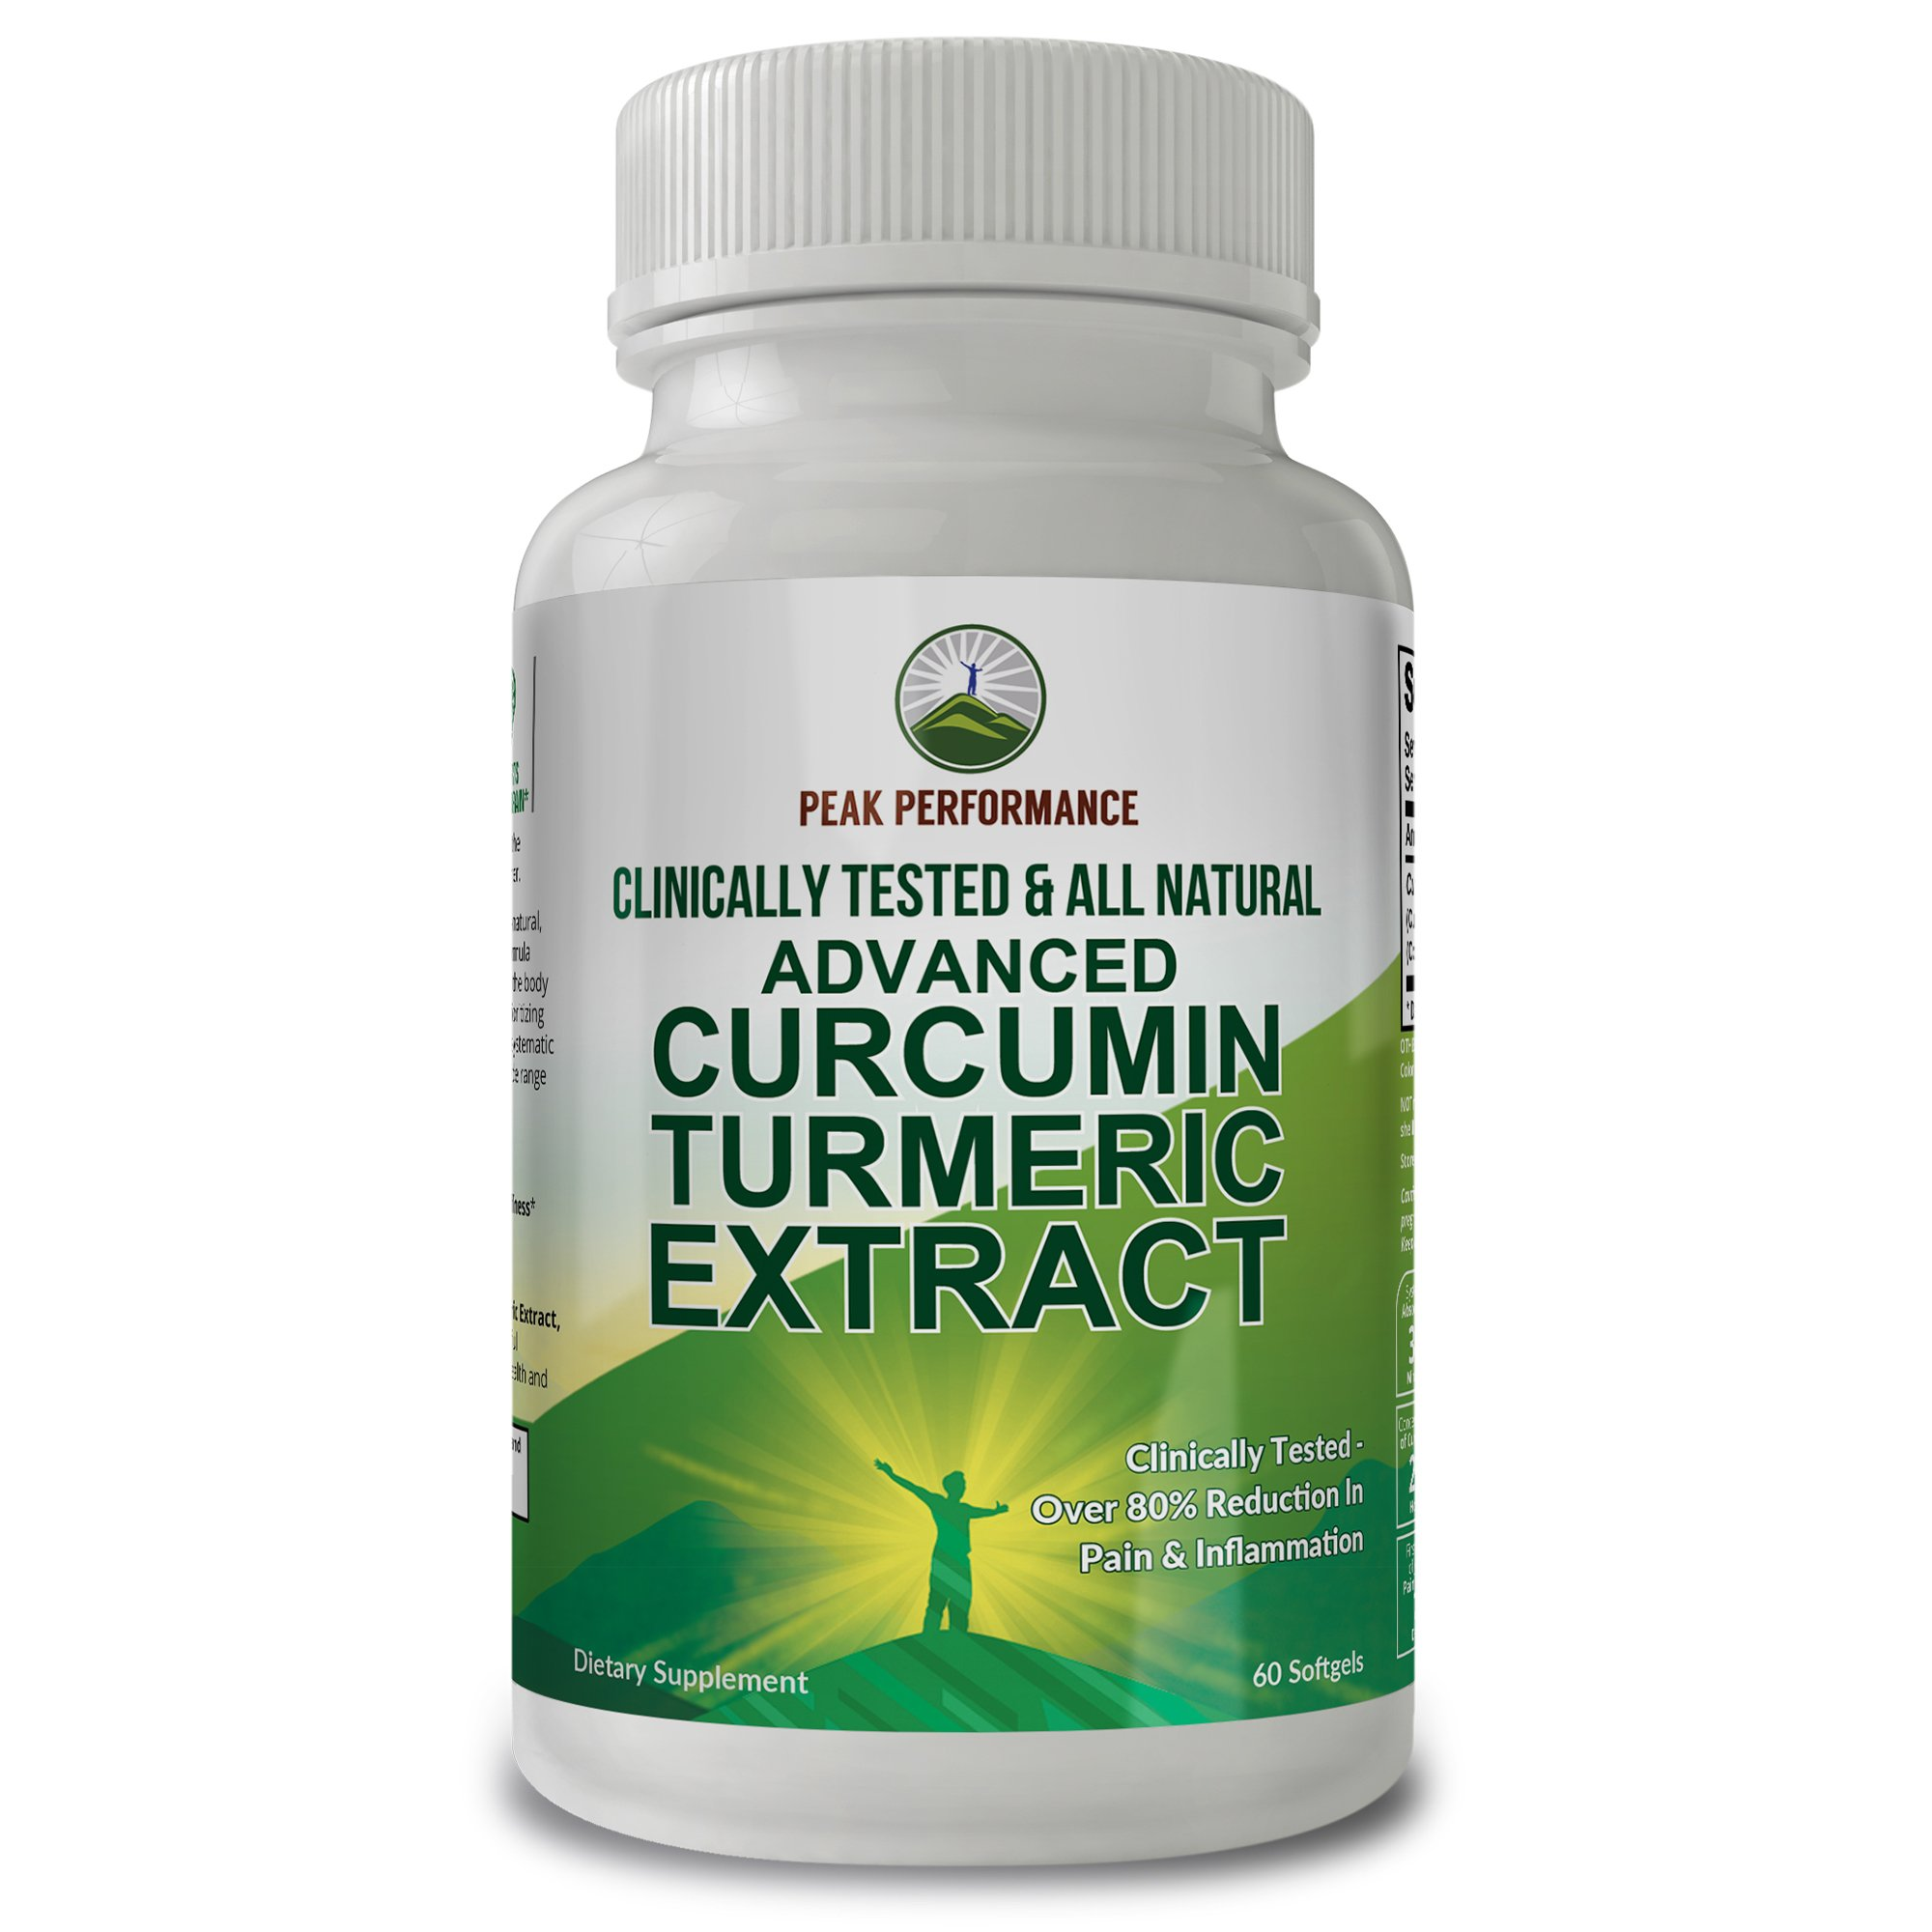 Advanced Turmeric Curcumin Extract Clinically Proven Reduction in Pain and Inflammation. Proof - We Have The Clinical Human Study. 48 Times More Absorption. All Natural Supplement by Peak Performance